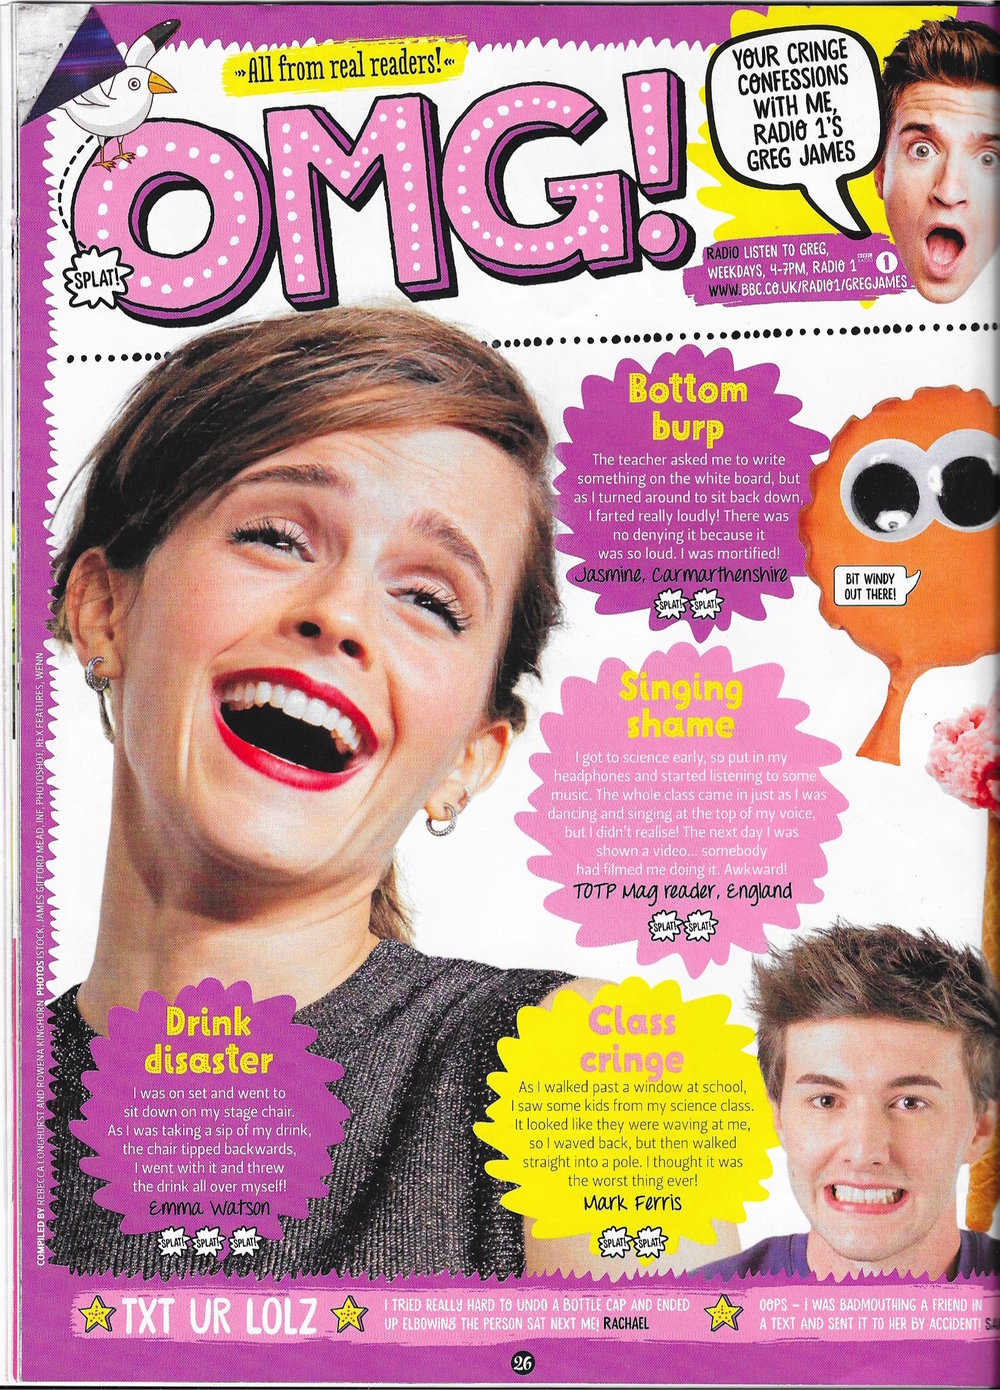 Top of the Pops - OMG Cringe spread, page 1